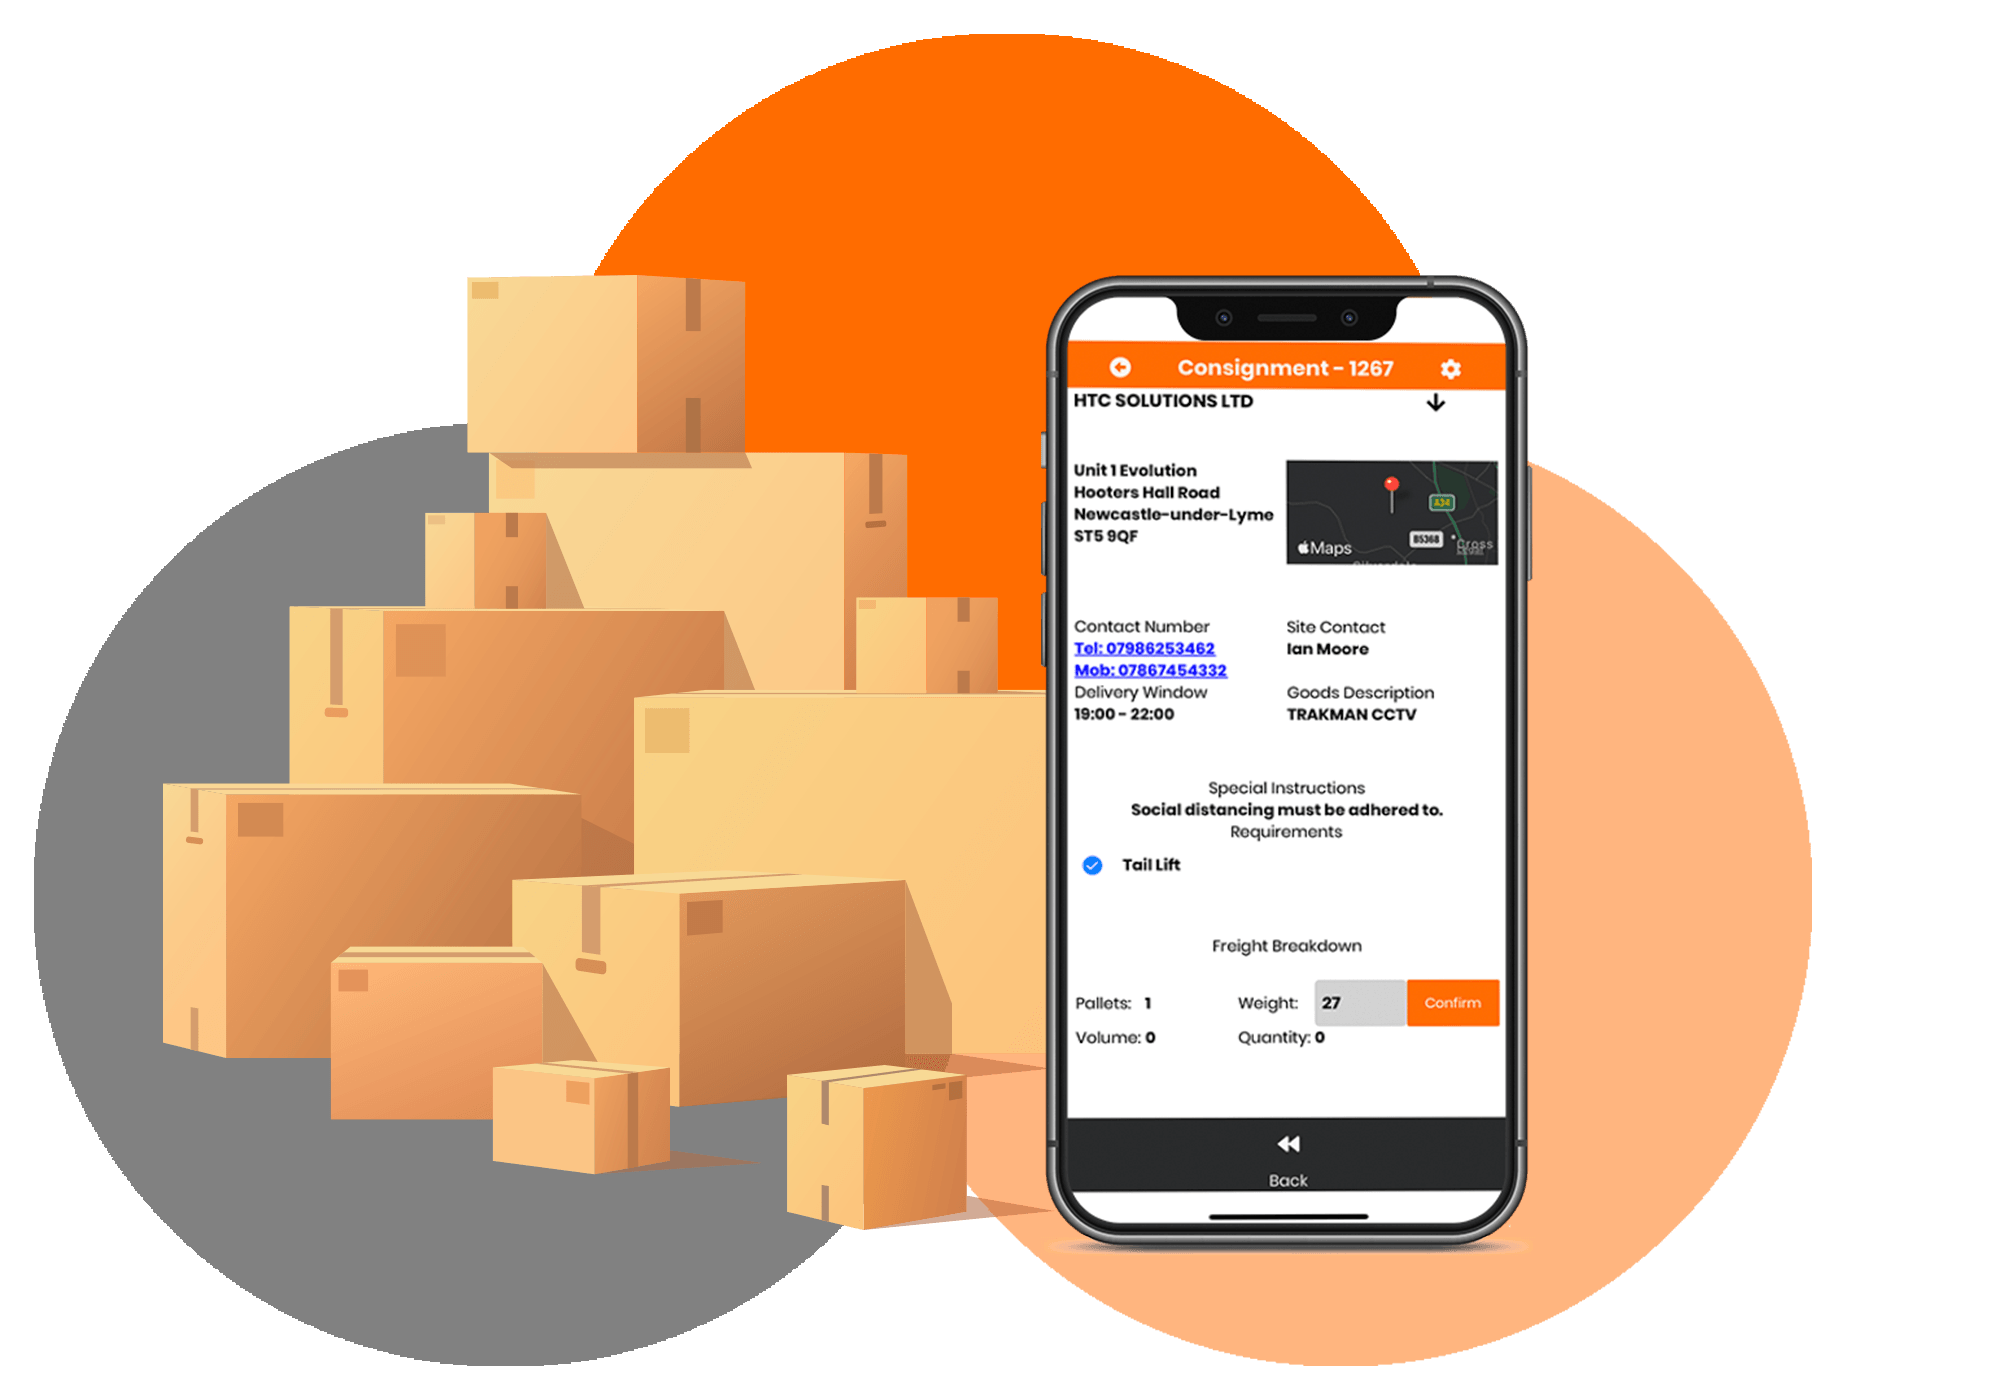 https://i0.wp.com/haultech.co.uk/wp-content/uploads/2021/06/HaulTechs-In-Cab-Proof-of-Delivery-app.png?fit=2000%2C1400&ssl=1